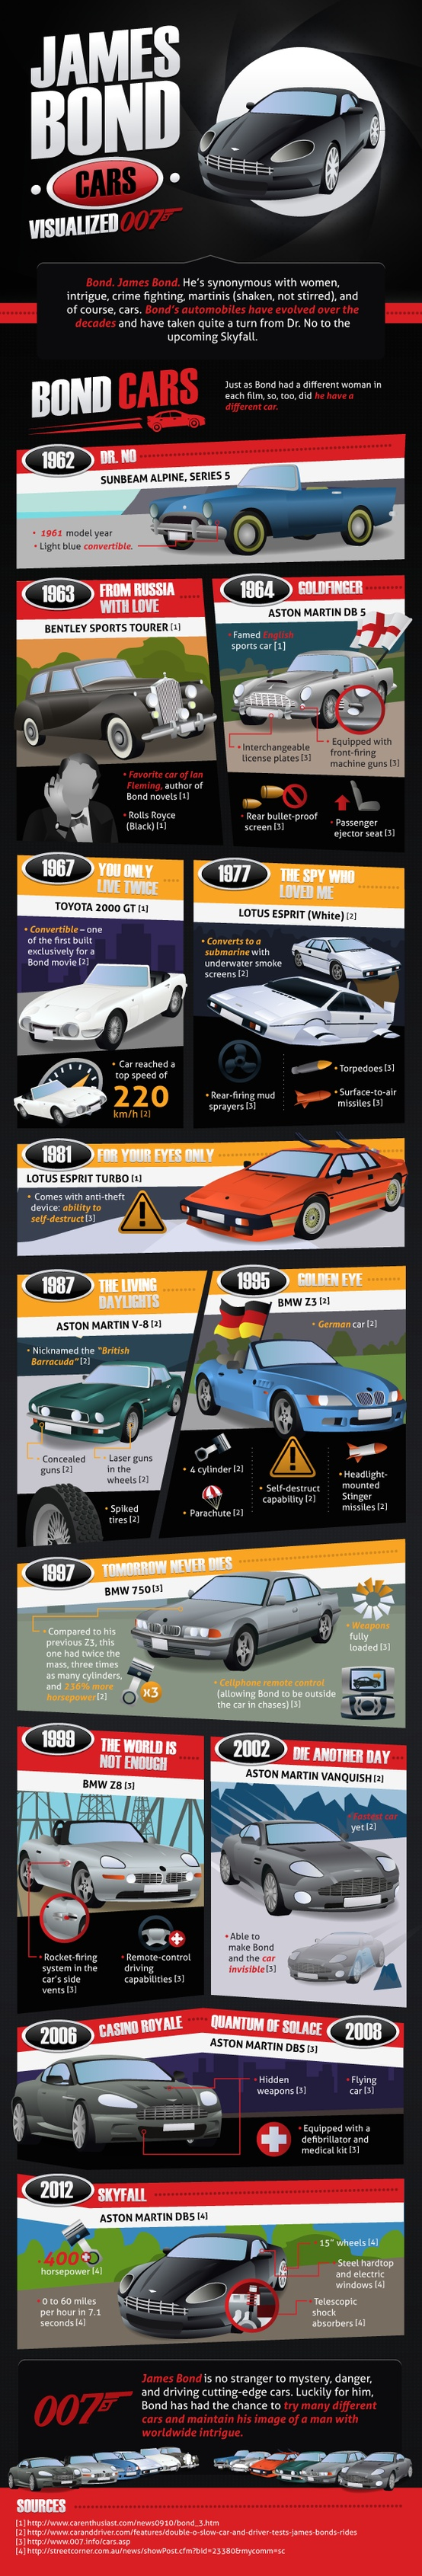 James Bond Cars Visualized